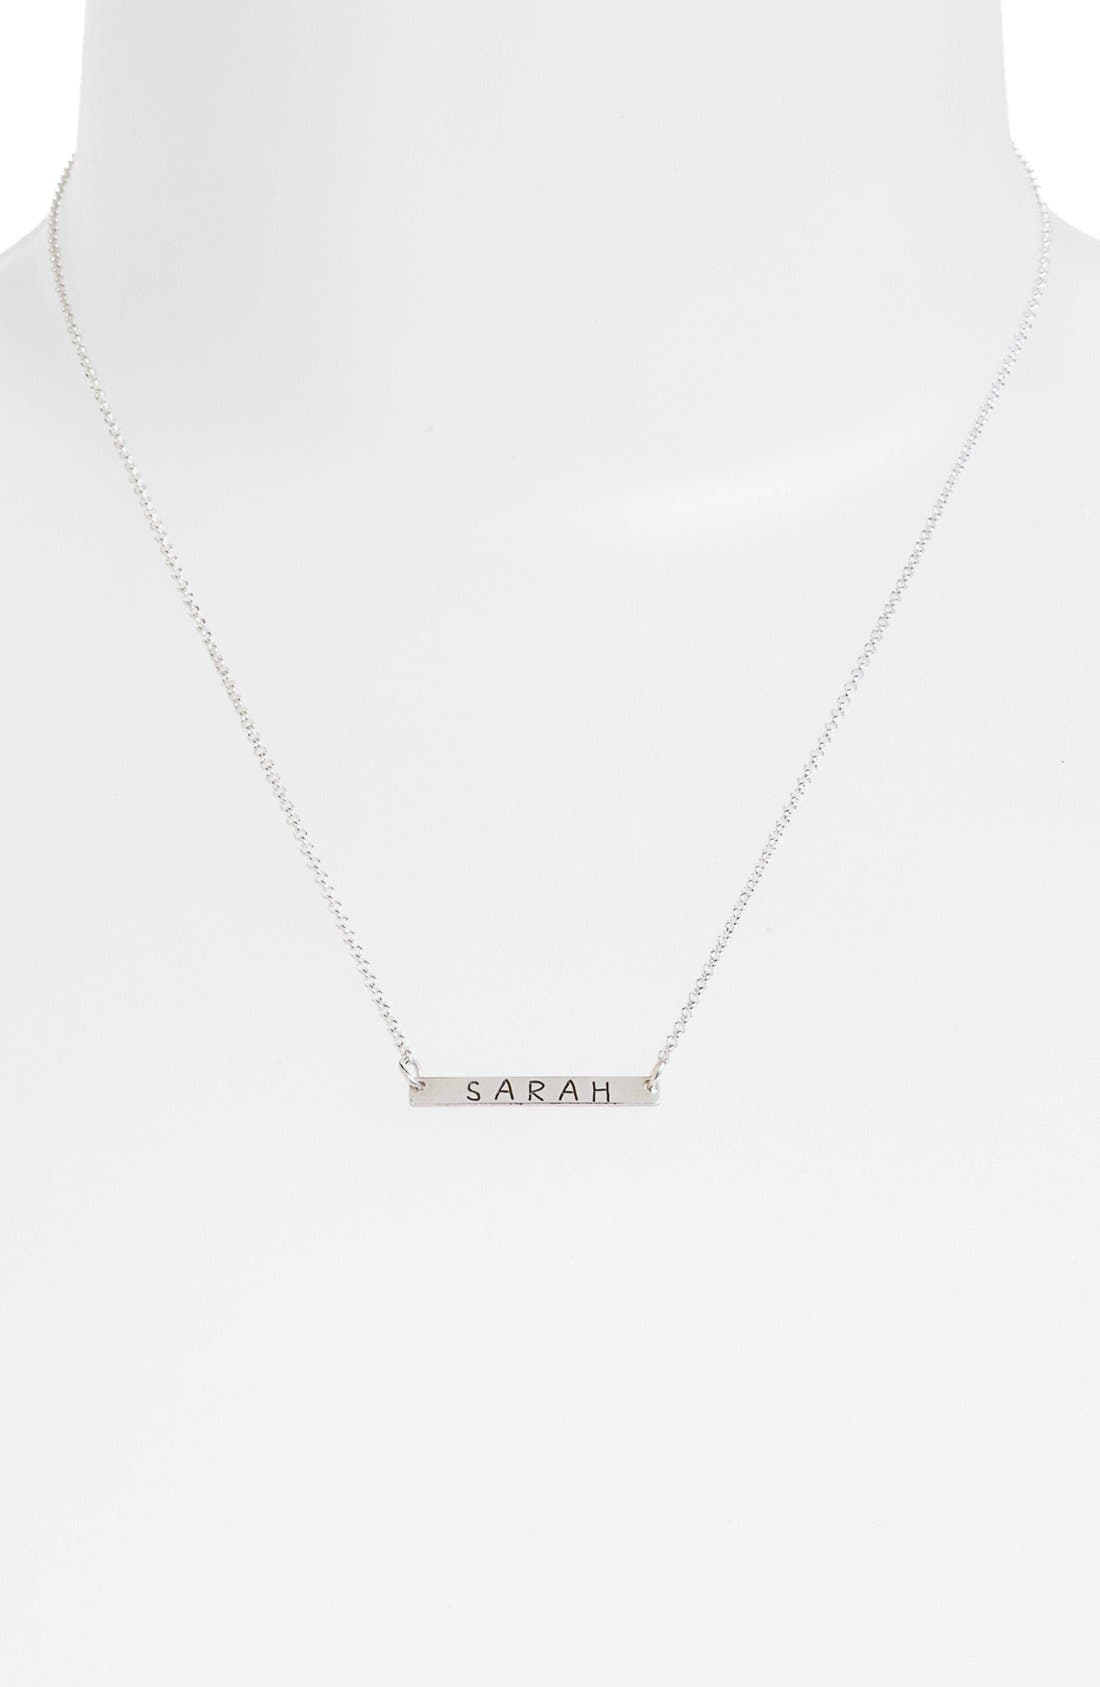 Personalized Bar Necklace,                             Alternate thumbnail 2, color,                             SILVER